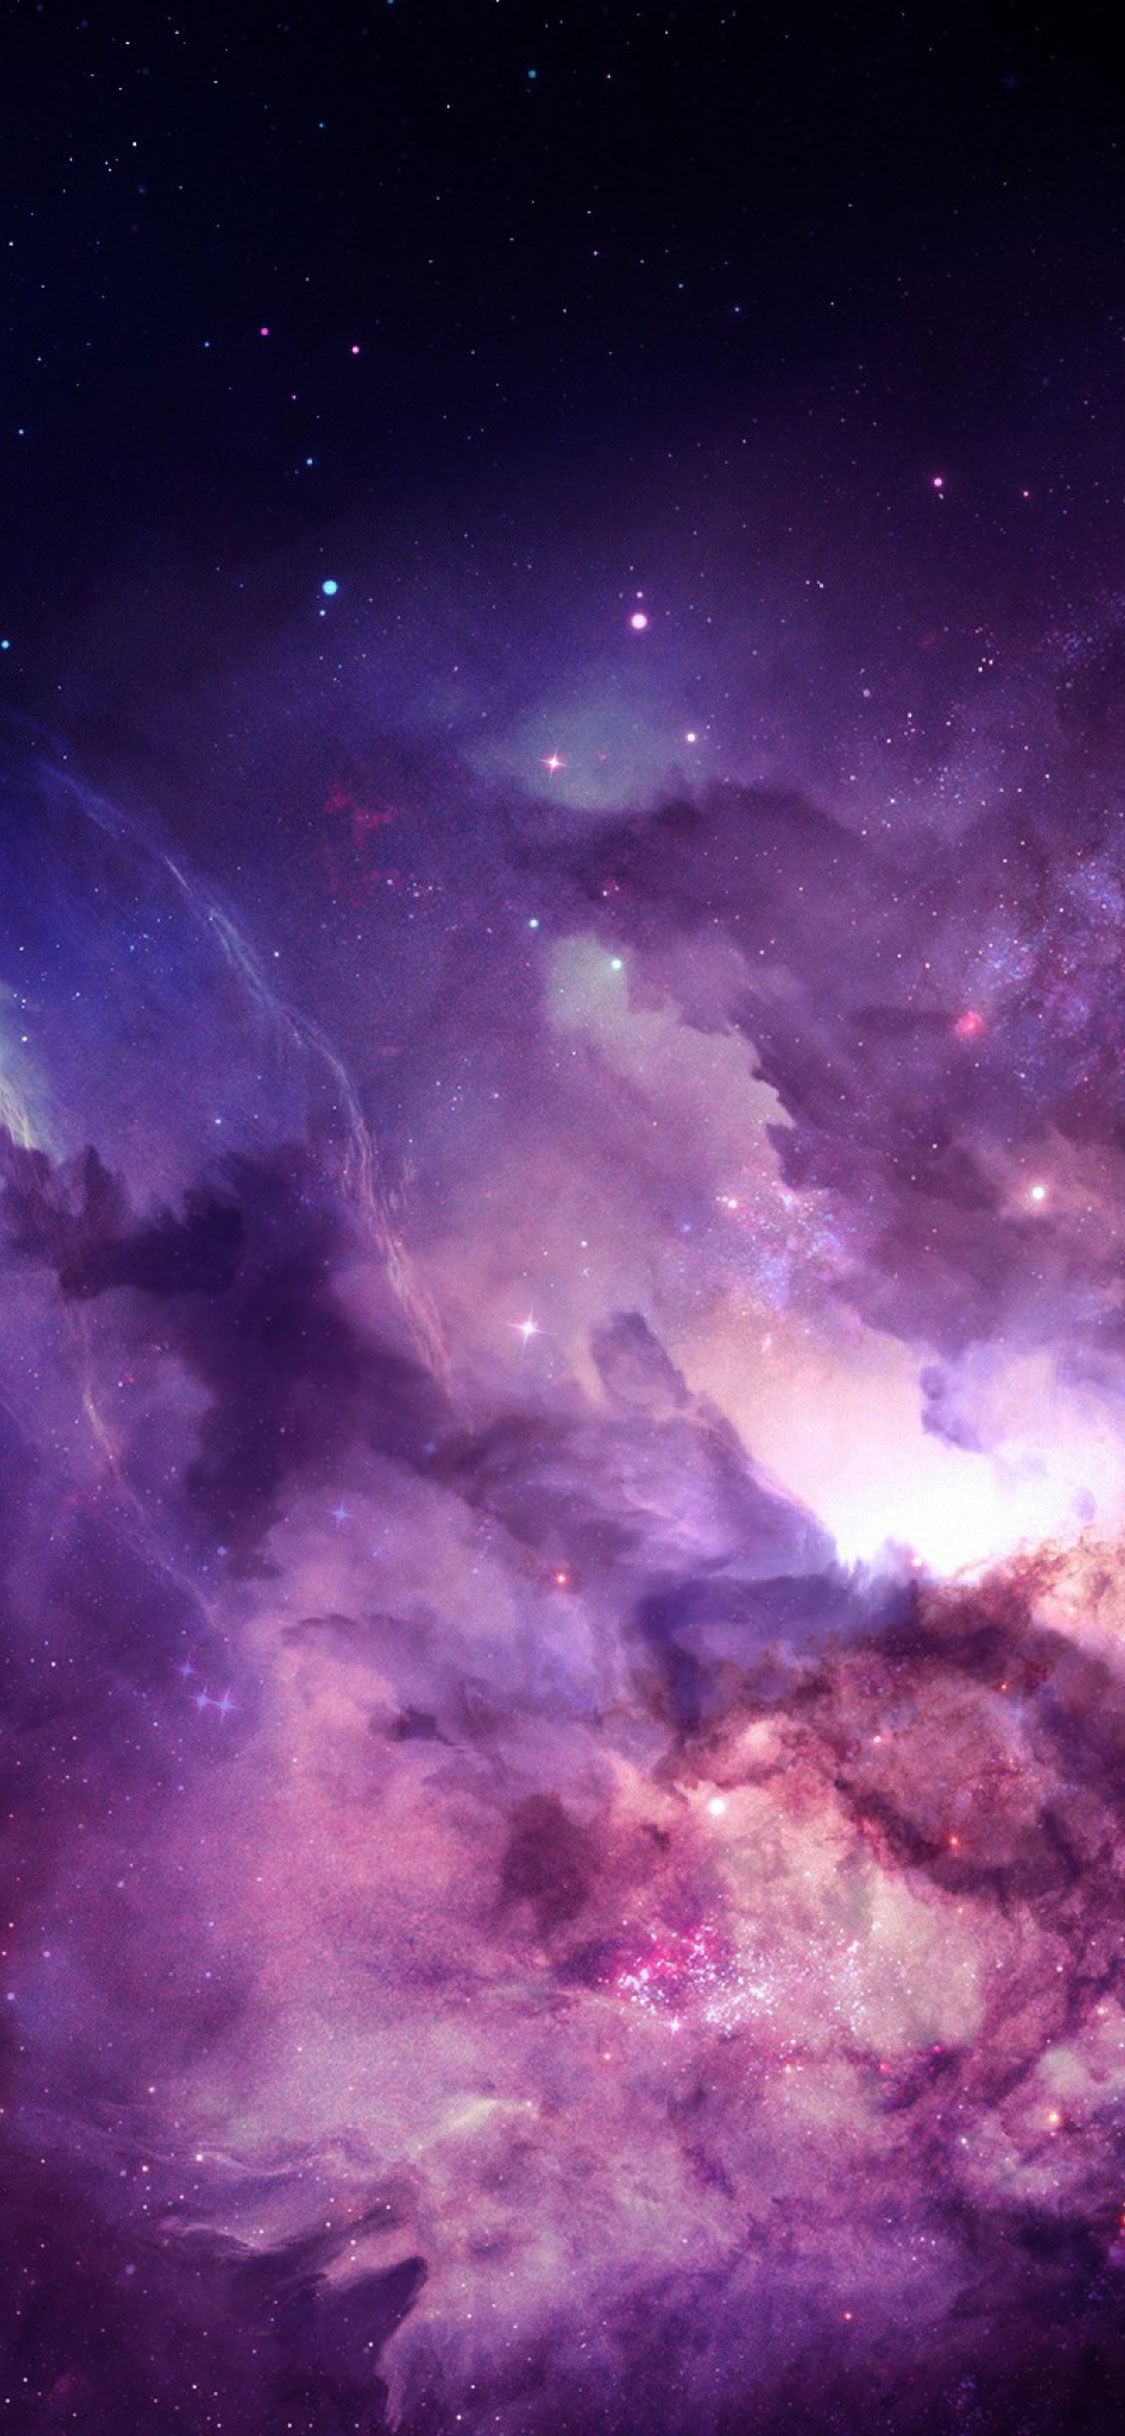 4k space wallpapers for desktop ipad and iphone